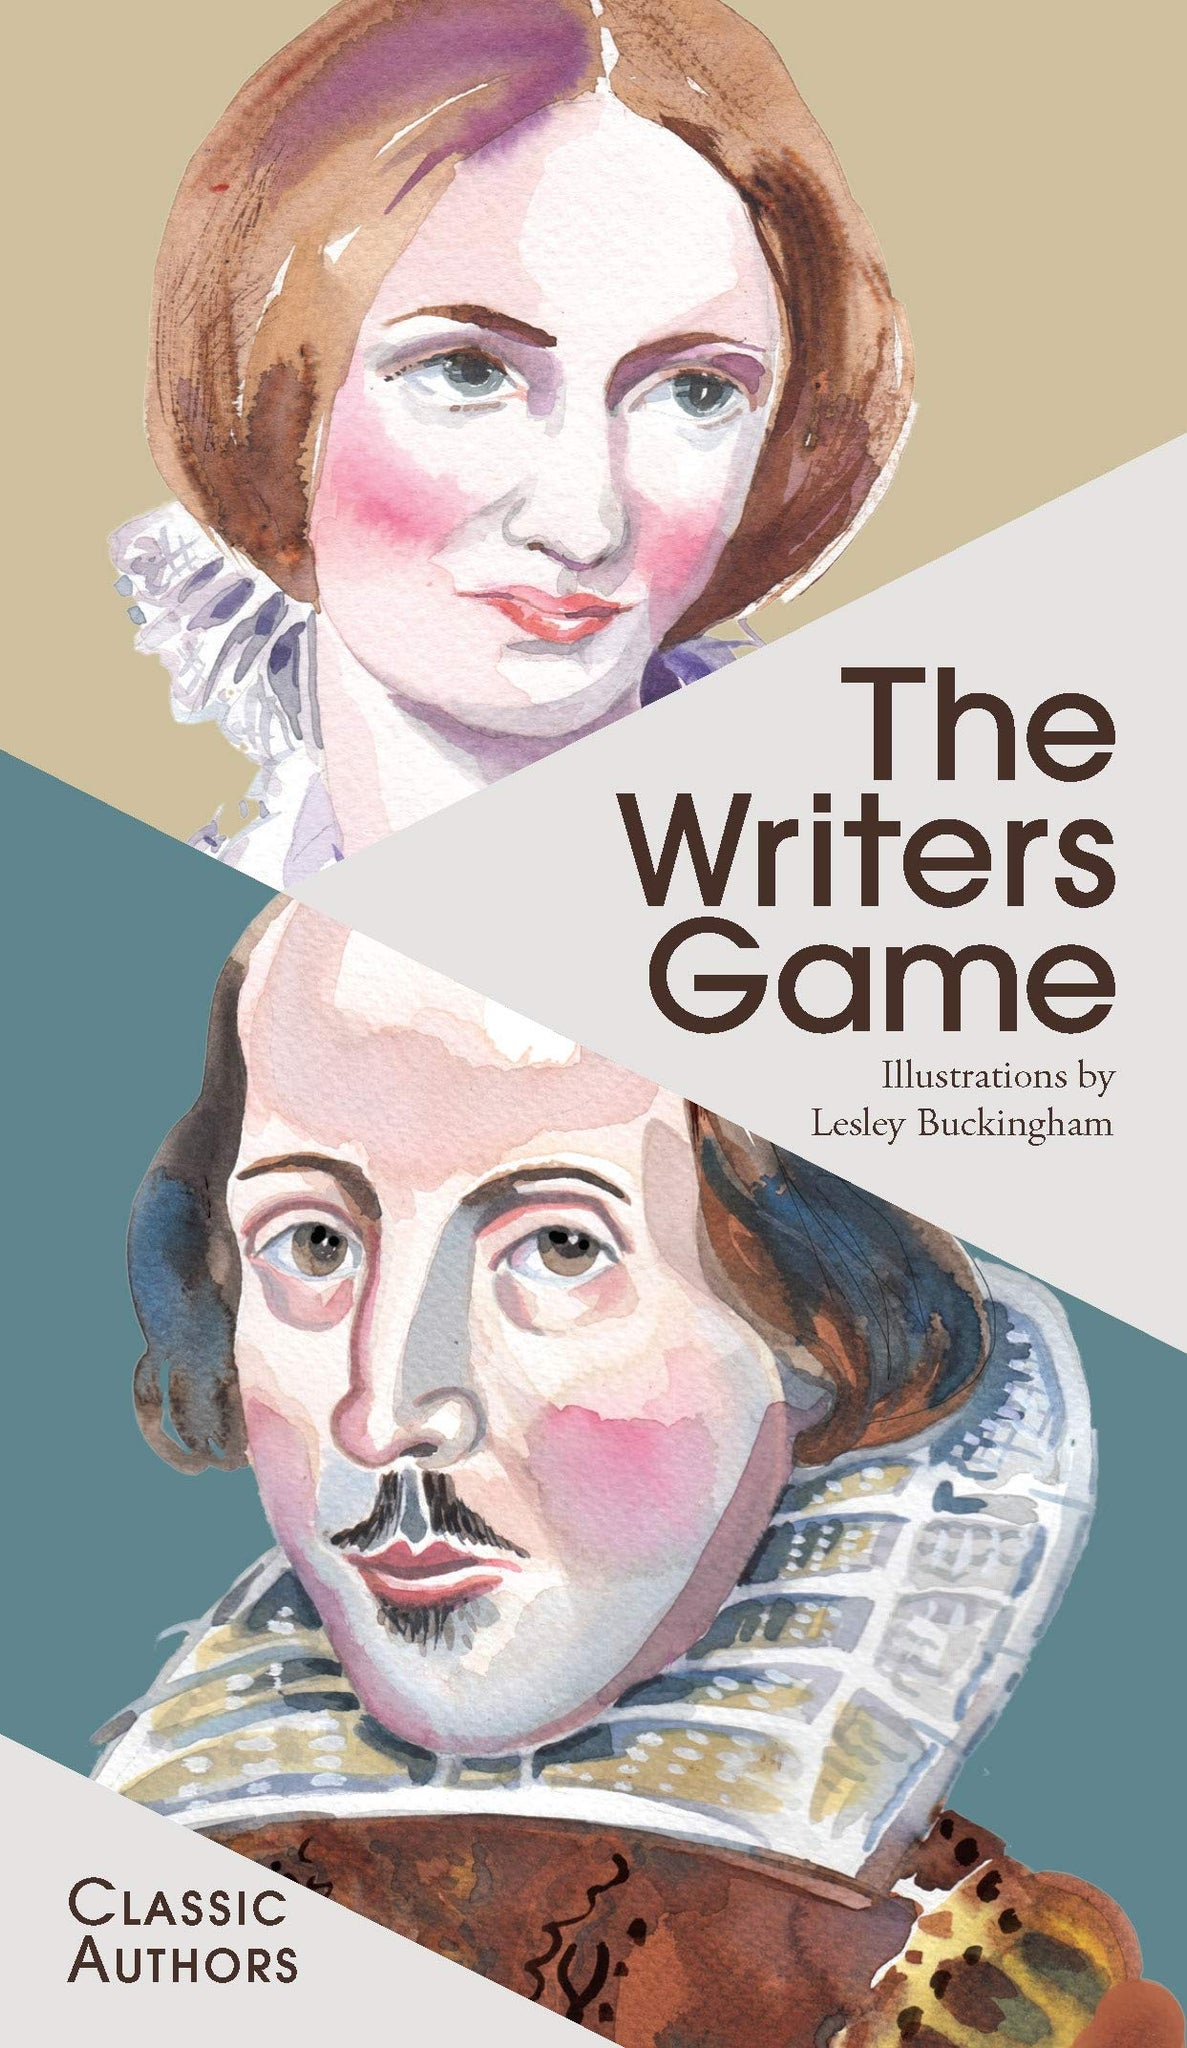 The Writer's Game: Classic Authors